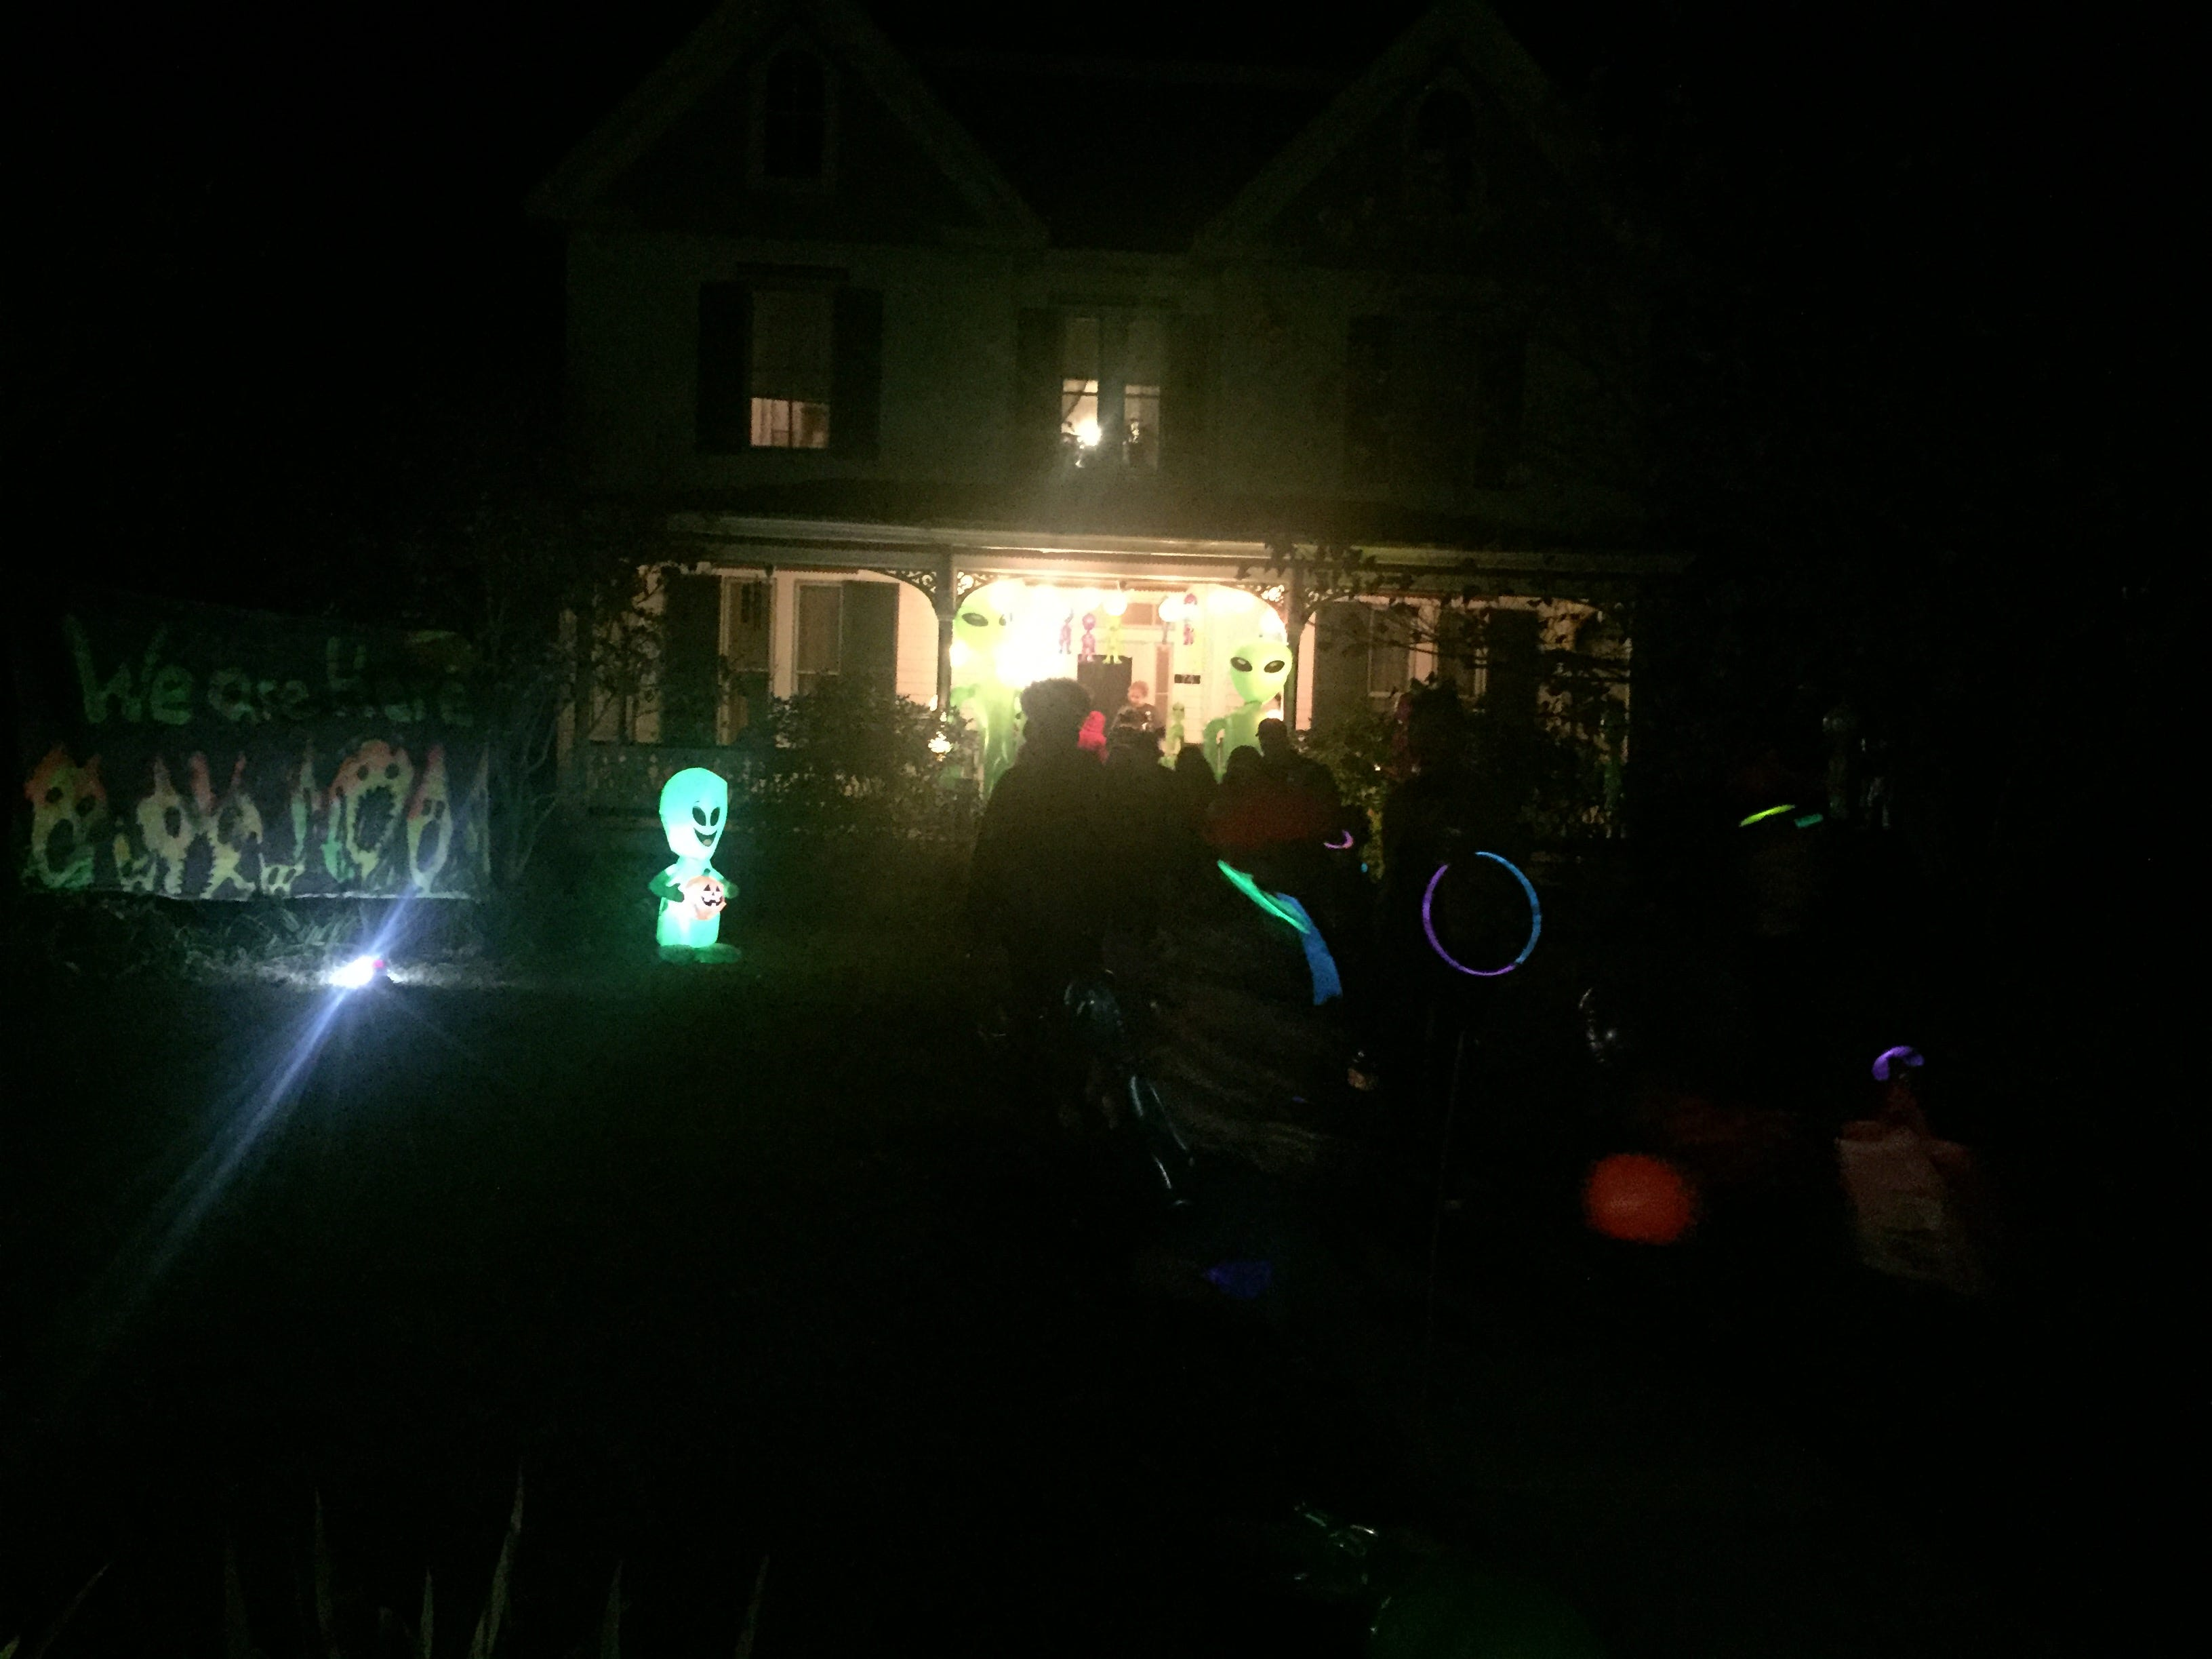 A house on Market Street in Onancock, Virginia that was decorated with an alien theme was a popular stop for trick-or-treaters on Wednesday, Oct. 31, 2018.